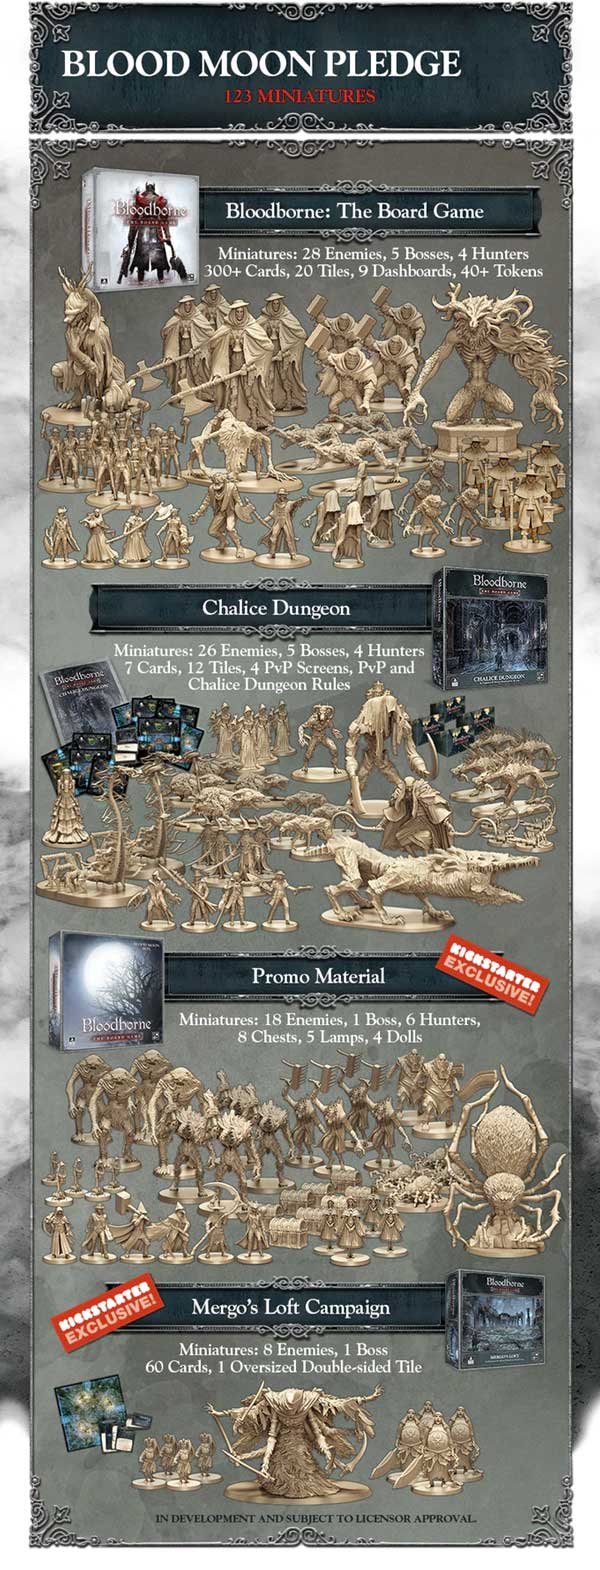 bloodborne blood moon order the game steward kickstarter bloodmooon board game